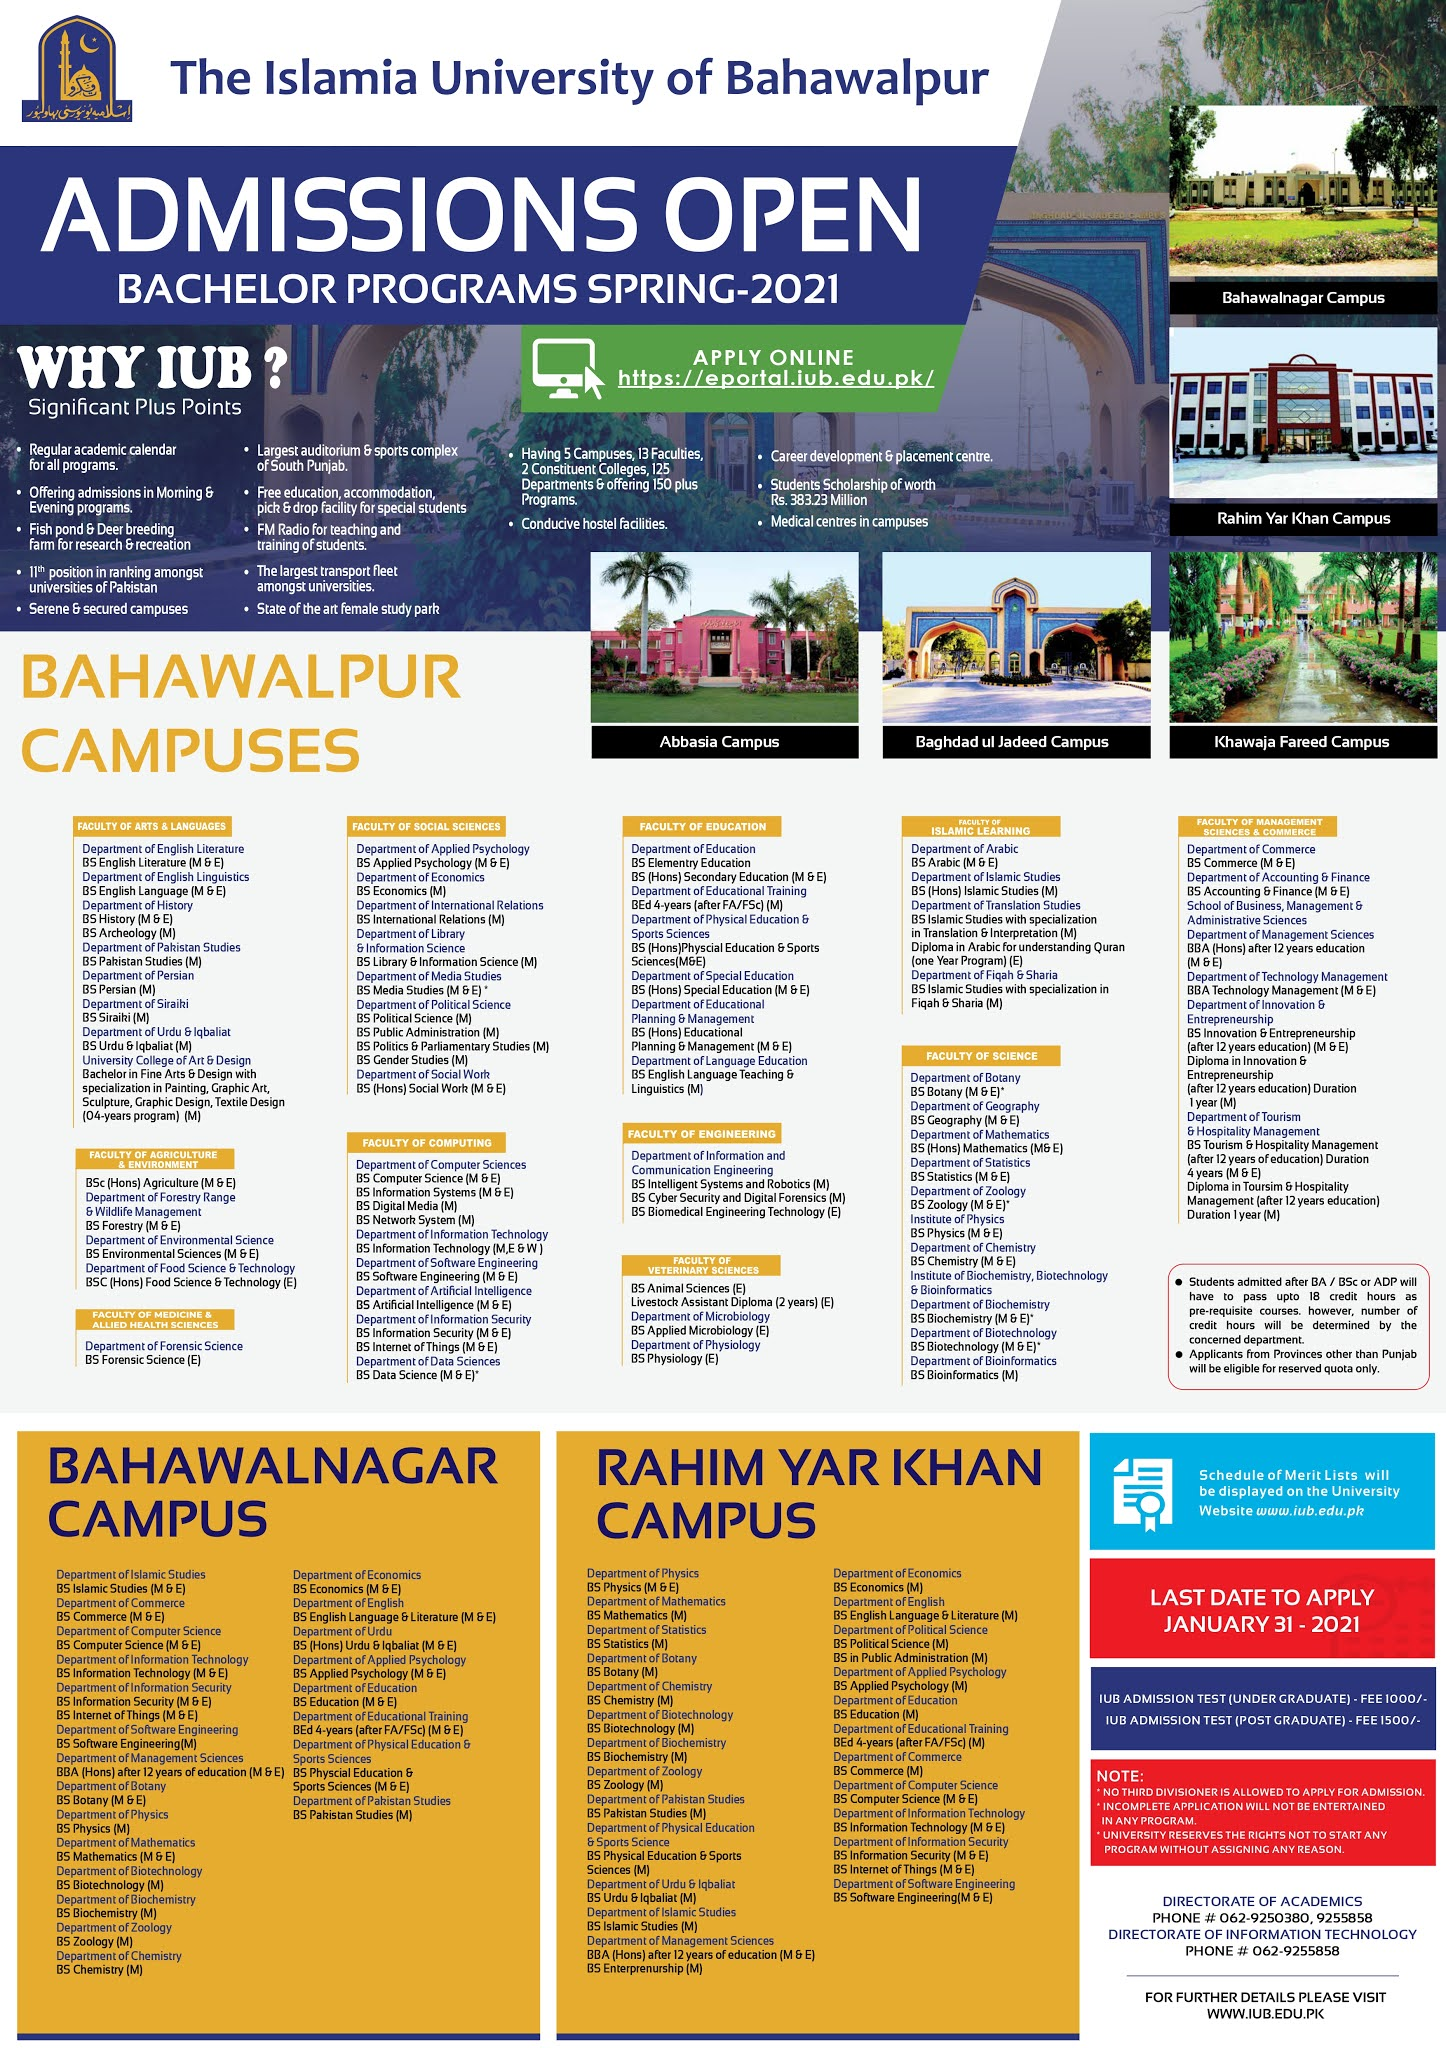 IUB Admissions Spring 2021 Open for Bachelor Programs